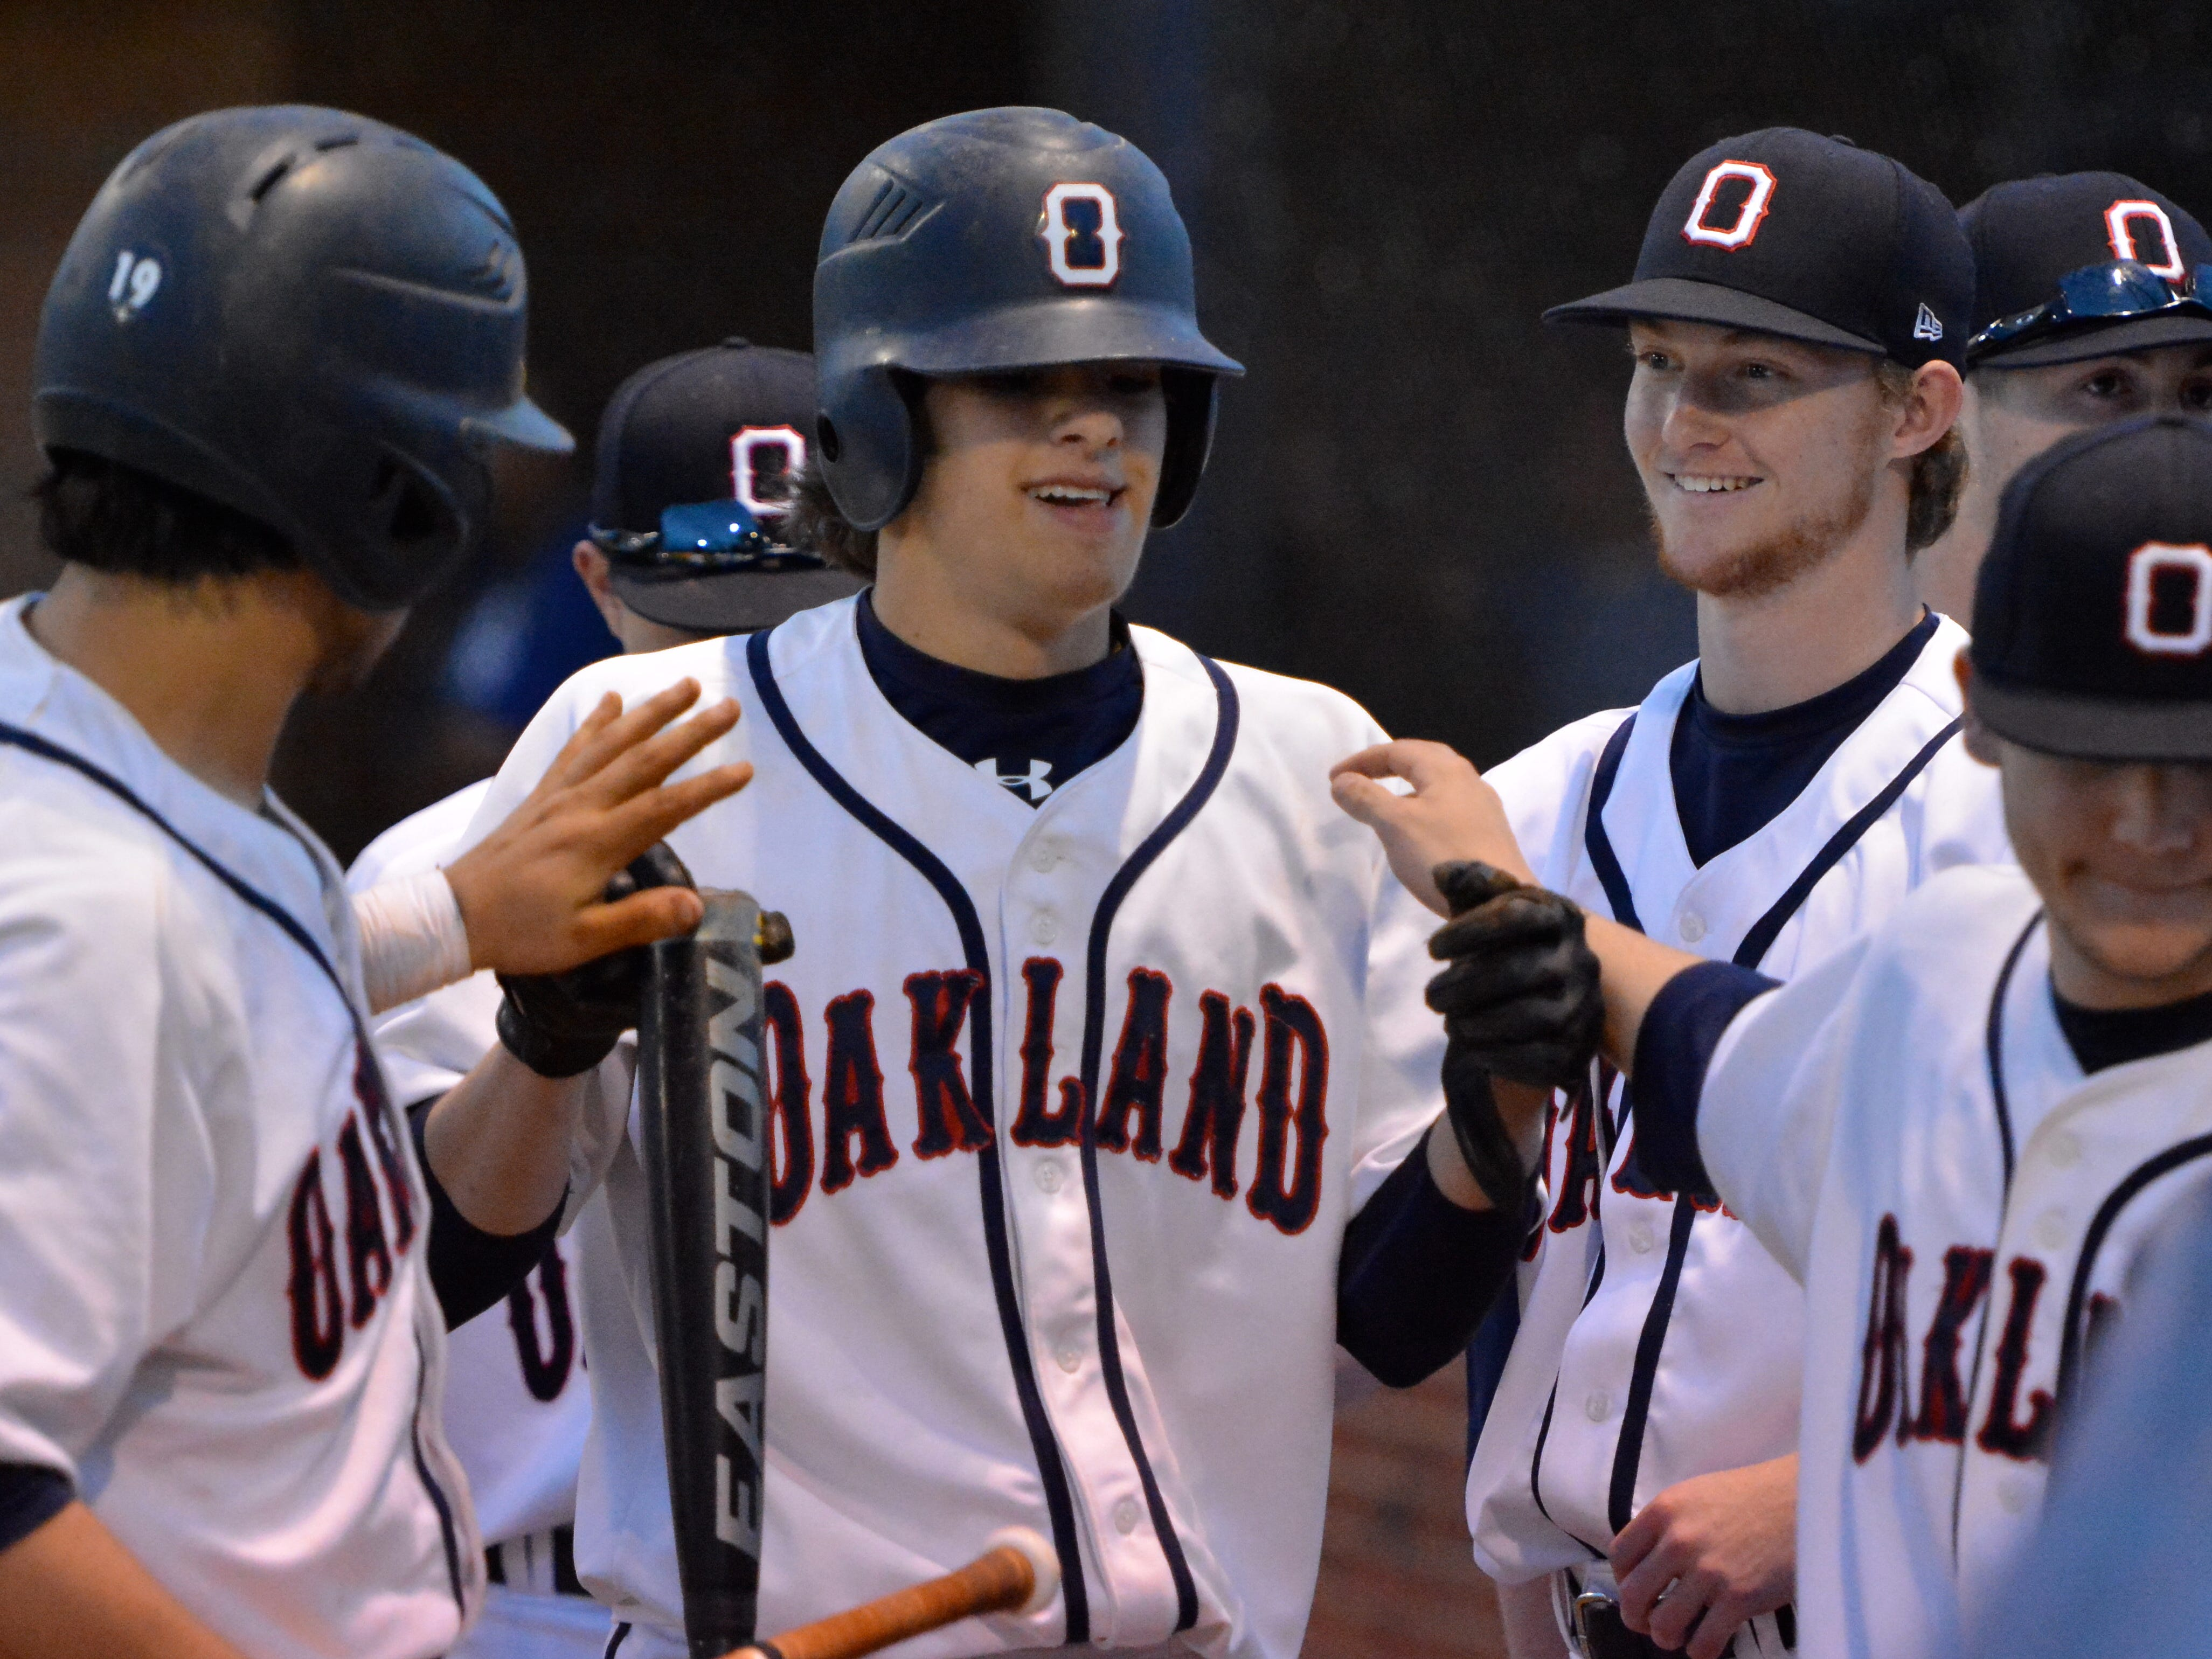 Oakland High catcher Justin Wilson, center, has signed with Lipscomb University to play baseball.